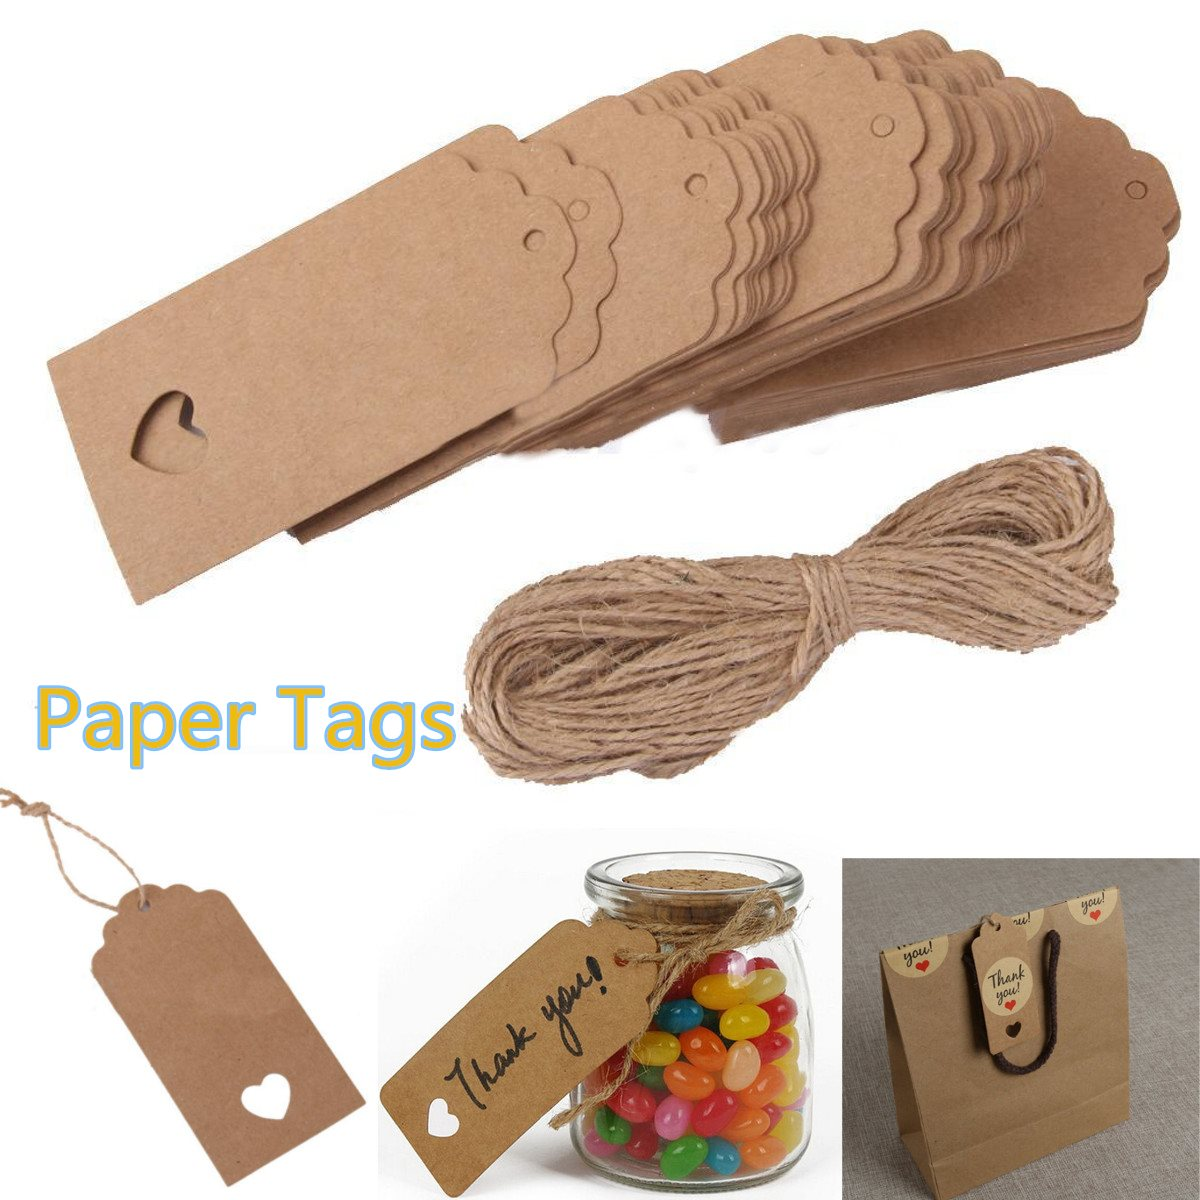 100pcsset kraft paper tags hanging labels string price craft diy 100pcsset kraft paper tags hanging labels string price craft diy card tags wedding party favor gifts bags boxes decoration in party diy decorations from jeuxipadfo Choice Image